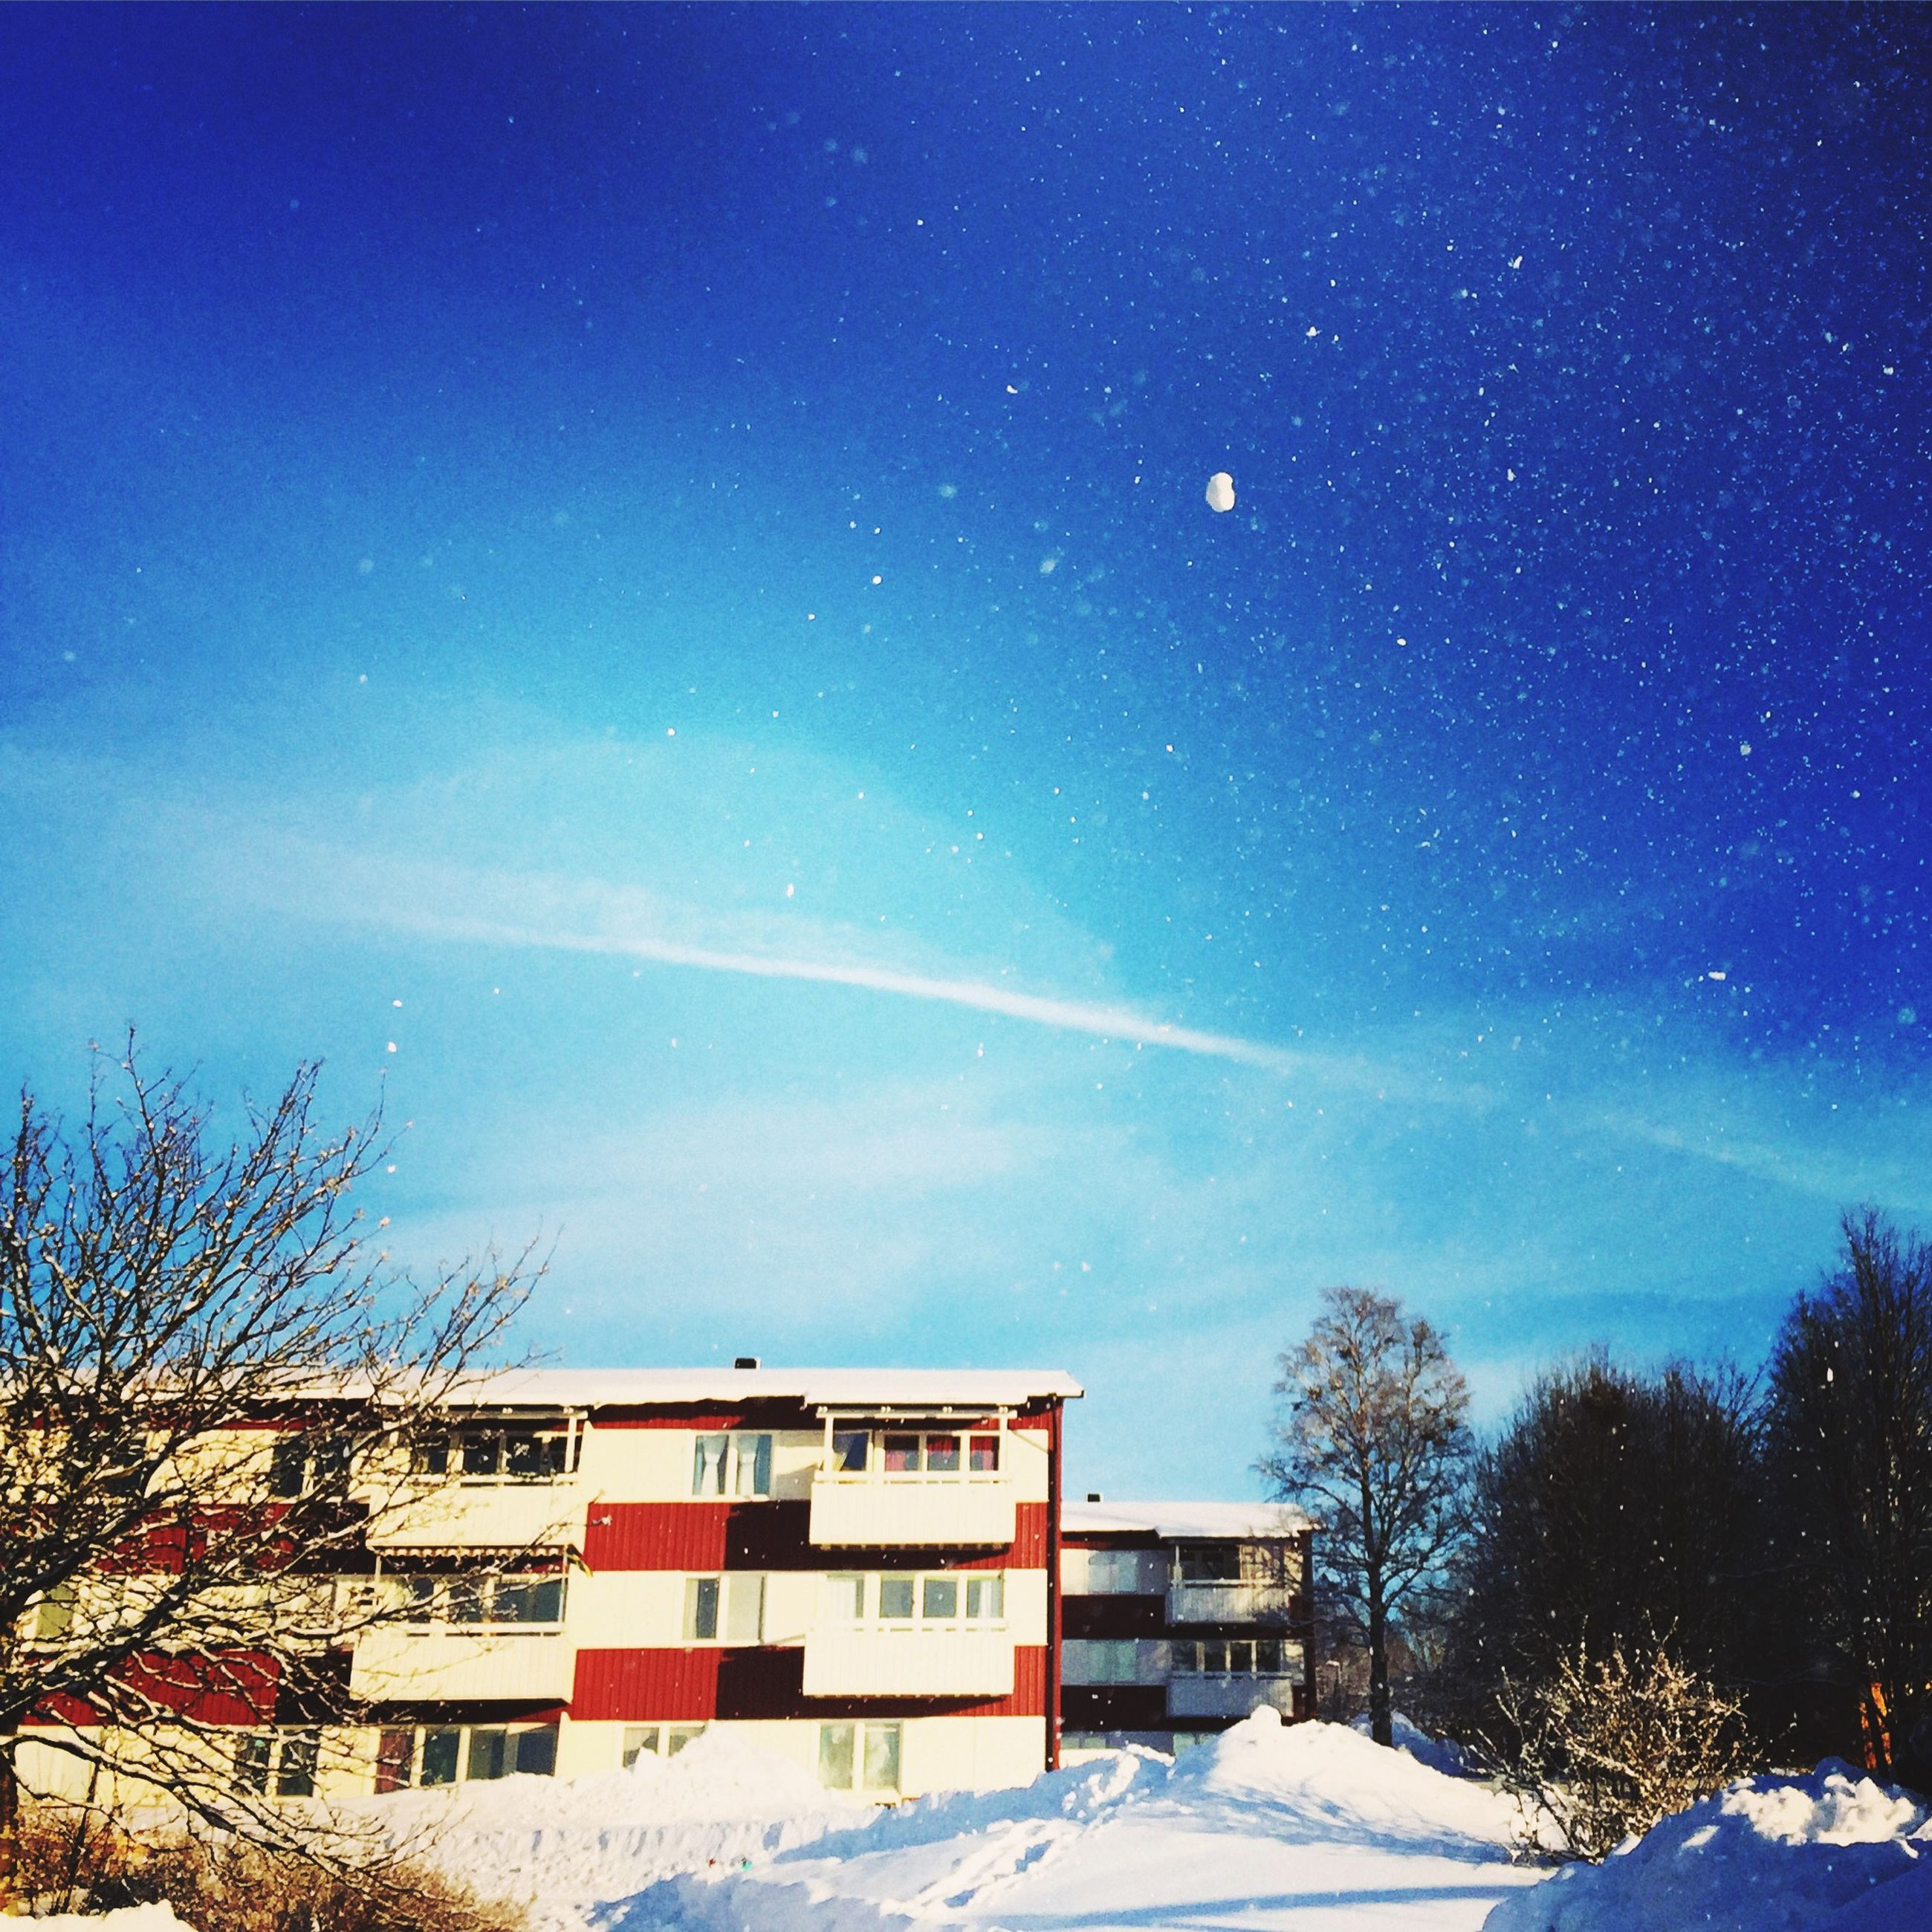 snow, building exterior, winter, architecture, cold temperature, built structure, house, blue, tree, residential structure, sky, season, residential building, bare tree, weather, nature, covering, landscape, clear sky, outdoors